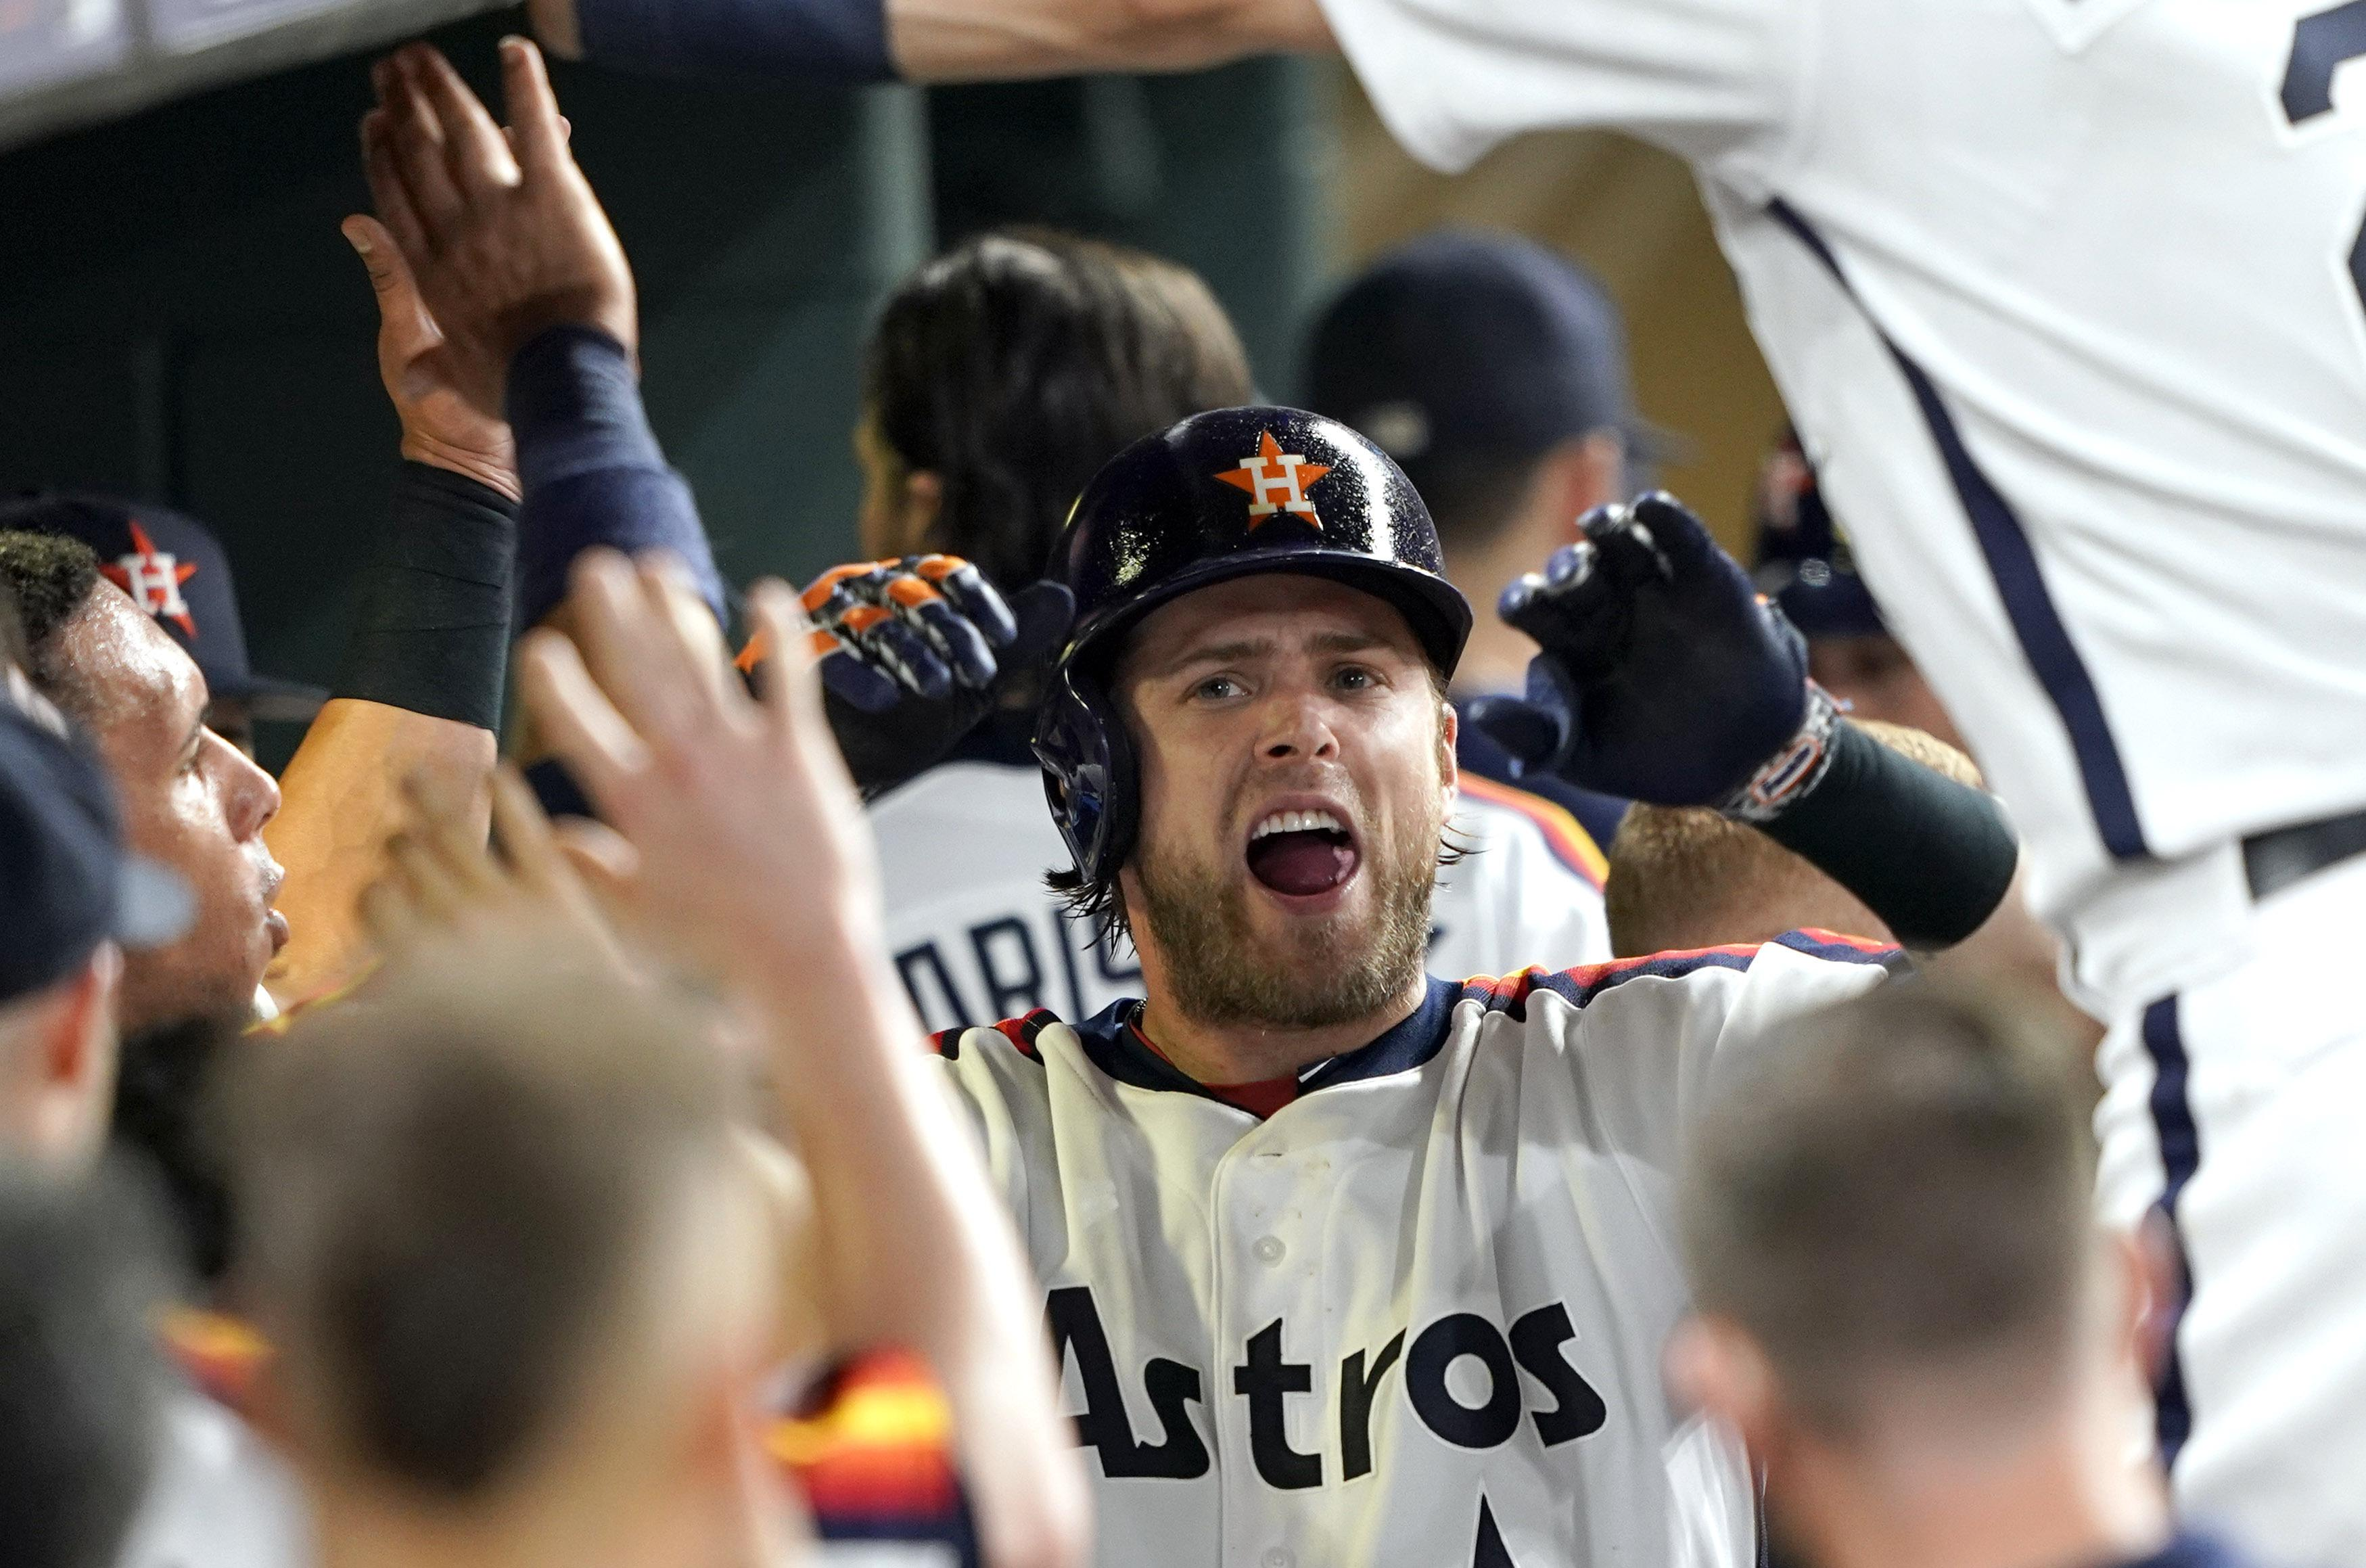 separation shoes 310da 26db6 Houston Astros  Josh Reddick celebrates in the dugout after hitting a home  run against the